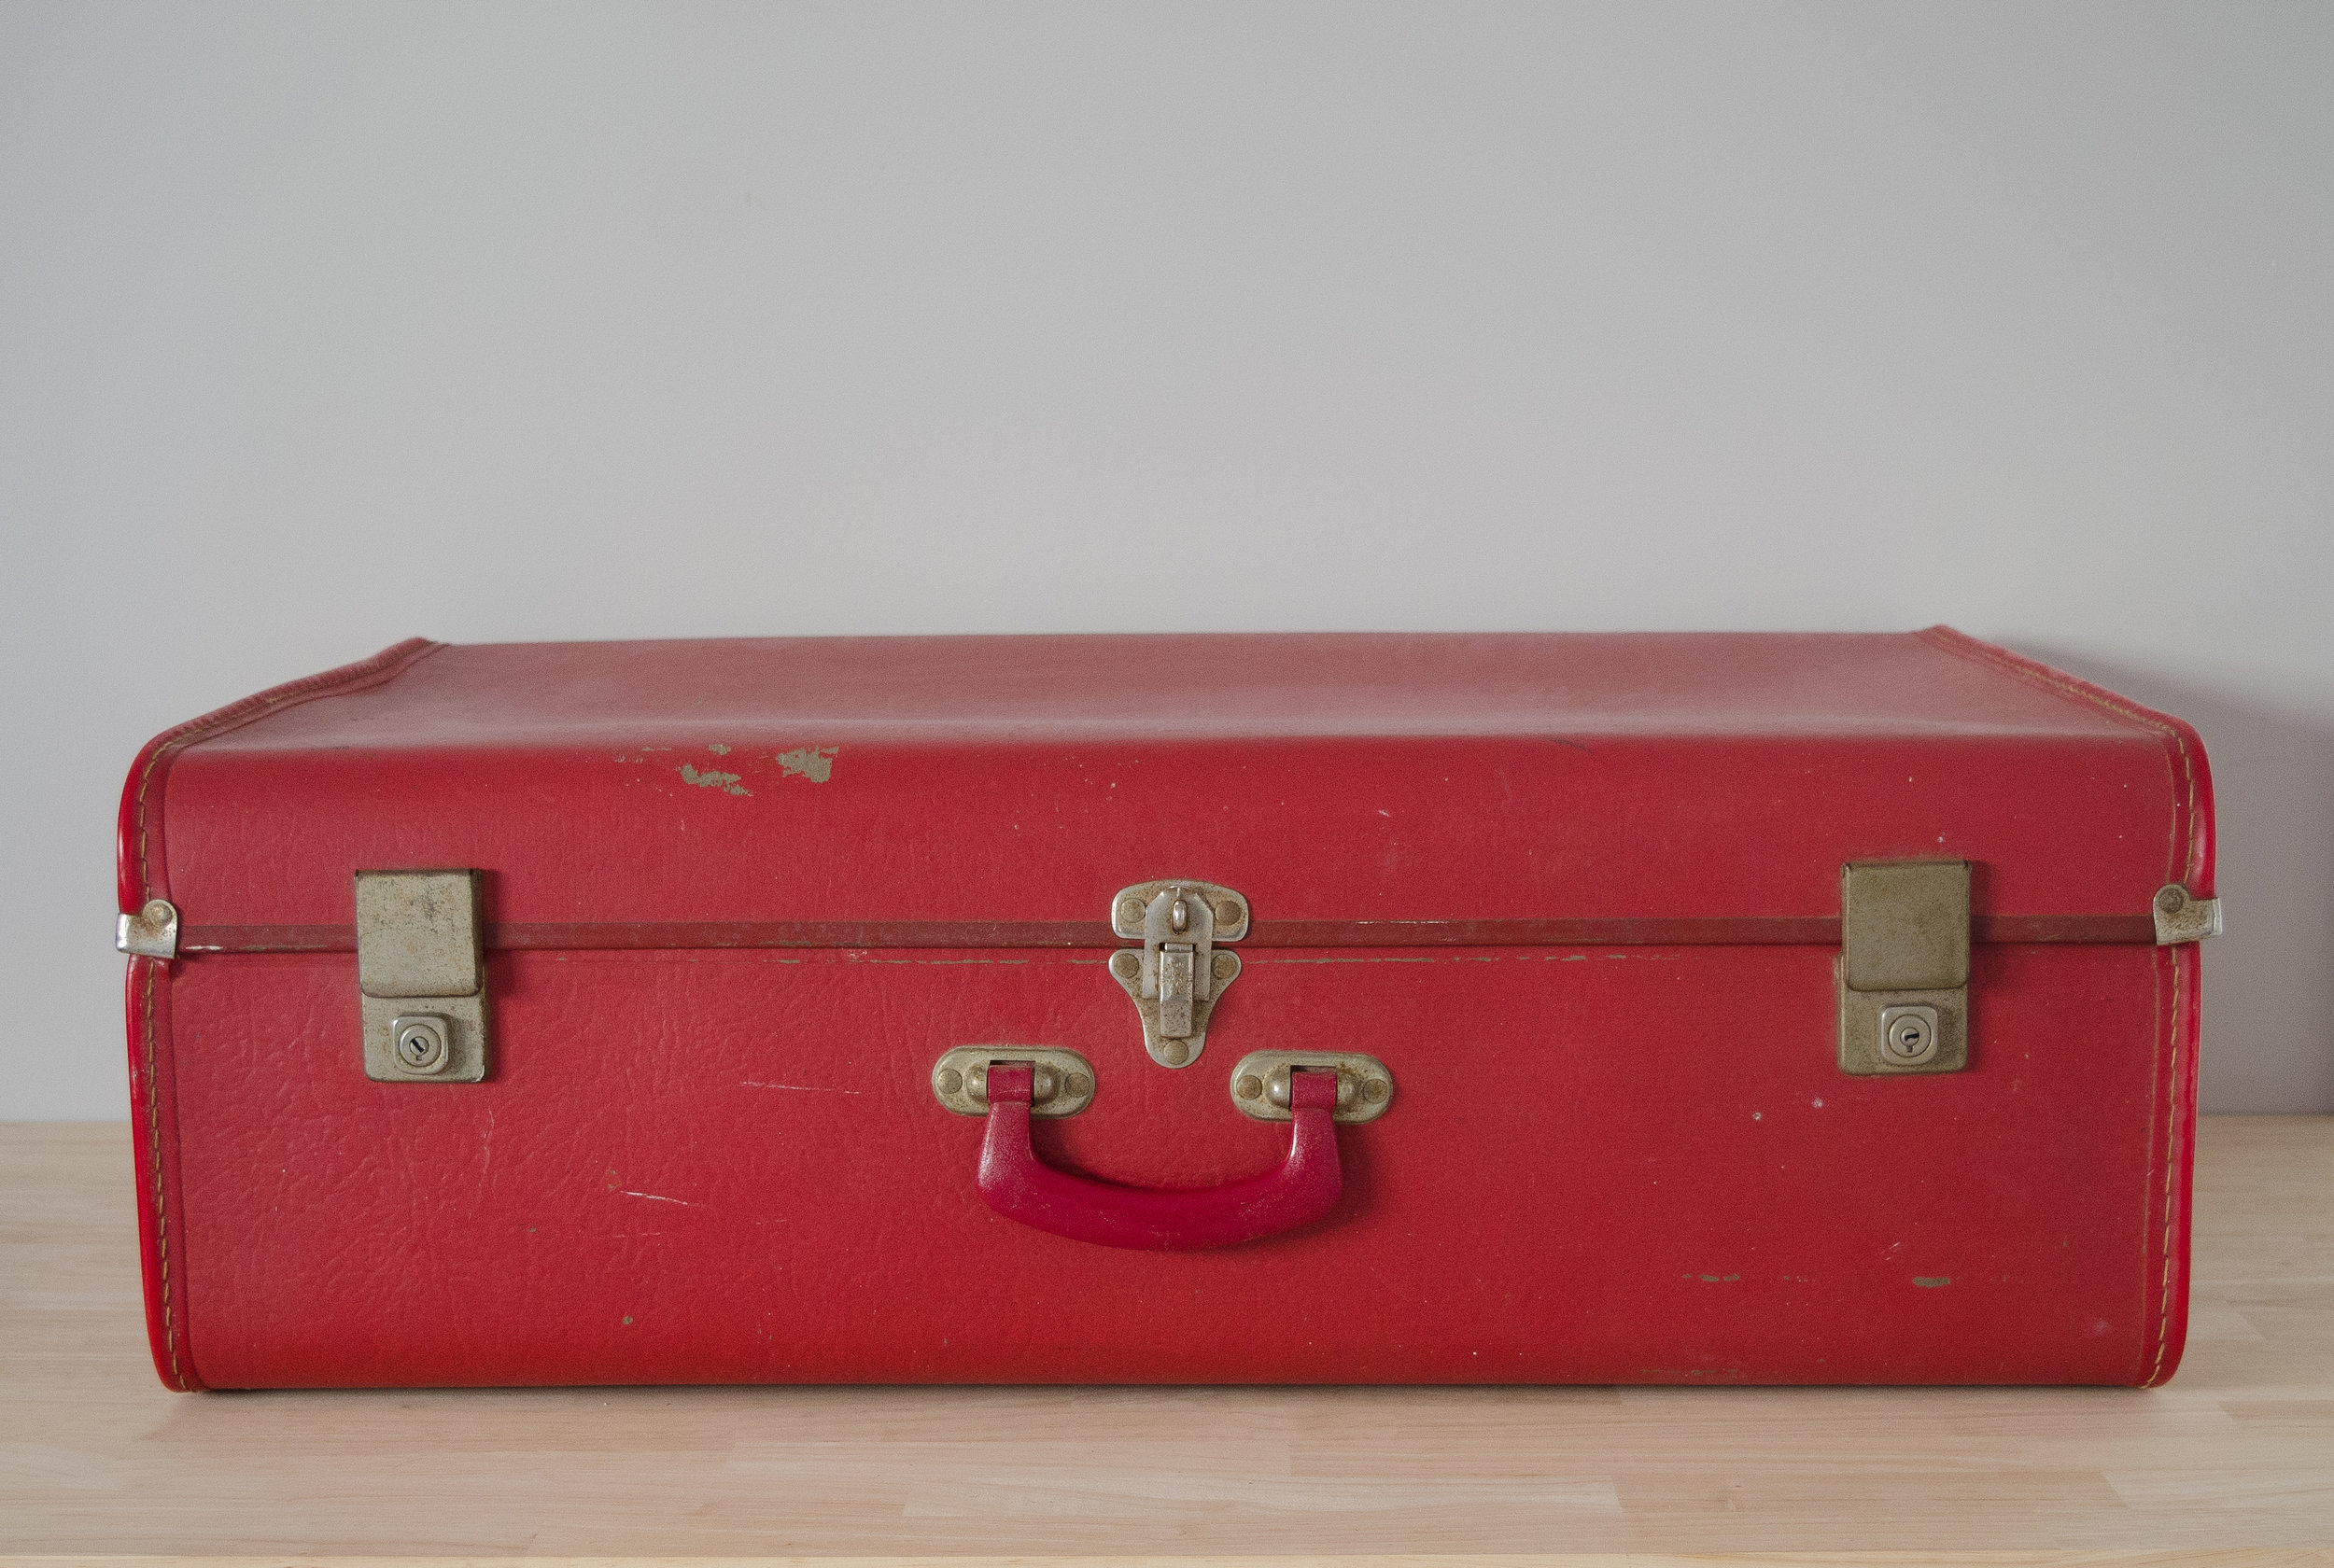 Abagail Suitcase - LARGE    $10.00 (3-day Hire)                                                  Quantity: 1